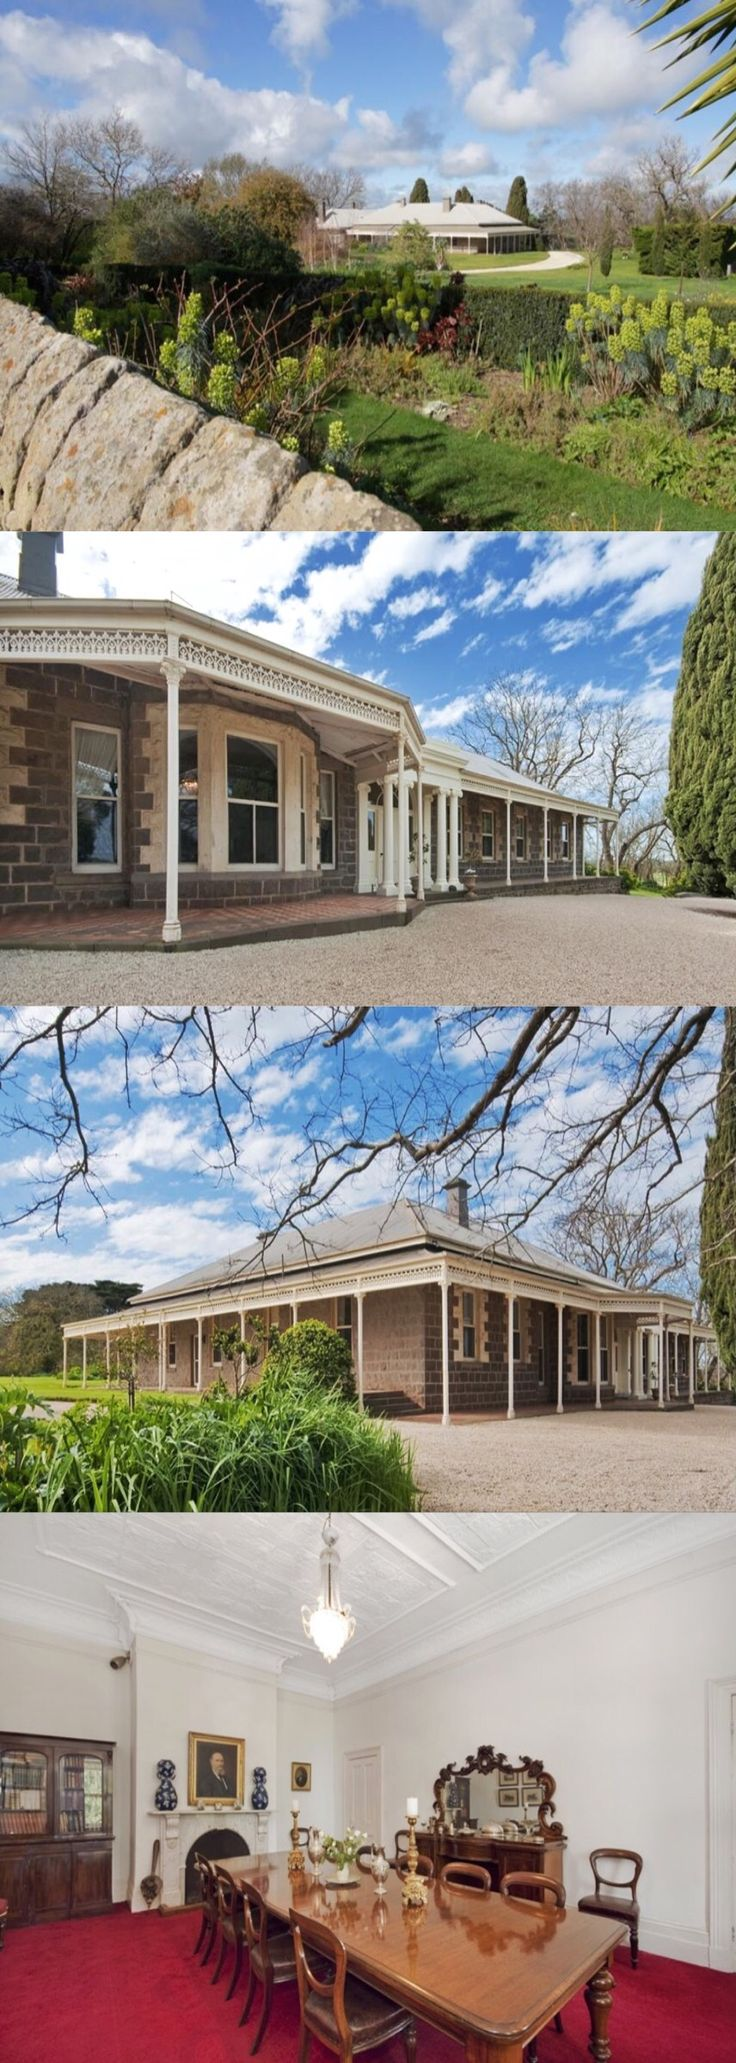 Merrang, Hexham (237kms W of Melbourne), was purchased 1856 by Scot settler Robert Hood. In 1859 he built a 4-room stone cottage, then in 1865 a substantial Italianate extension with impressive Ionic entrance portico. In 1875 the two sections were unified by a cast iron verandah designed by Andrew Kerr who also designed the gate lodge and outbuildings. Merrang remained in Hood family ownership for 156 years and four generations before it was sold to the neighbours in 2012.